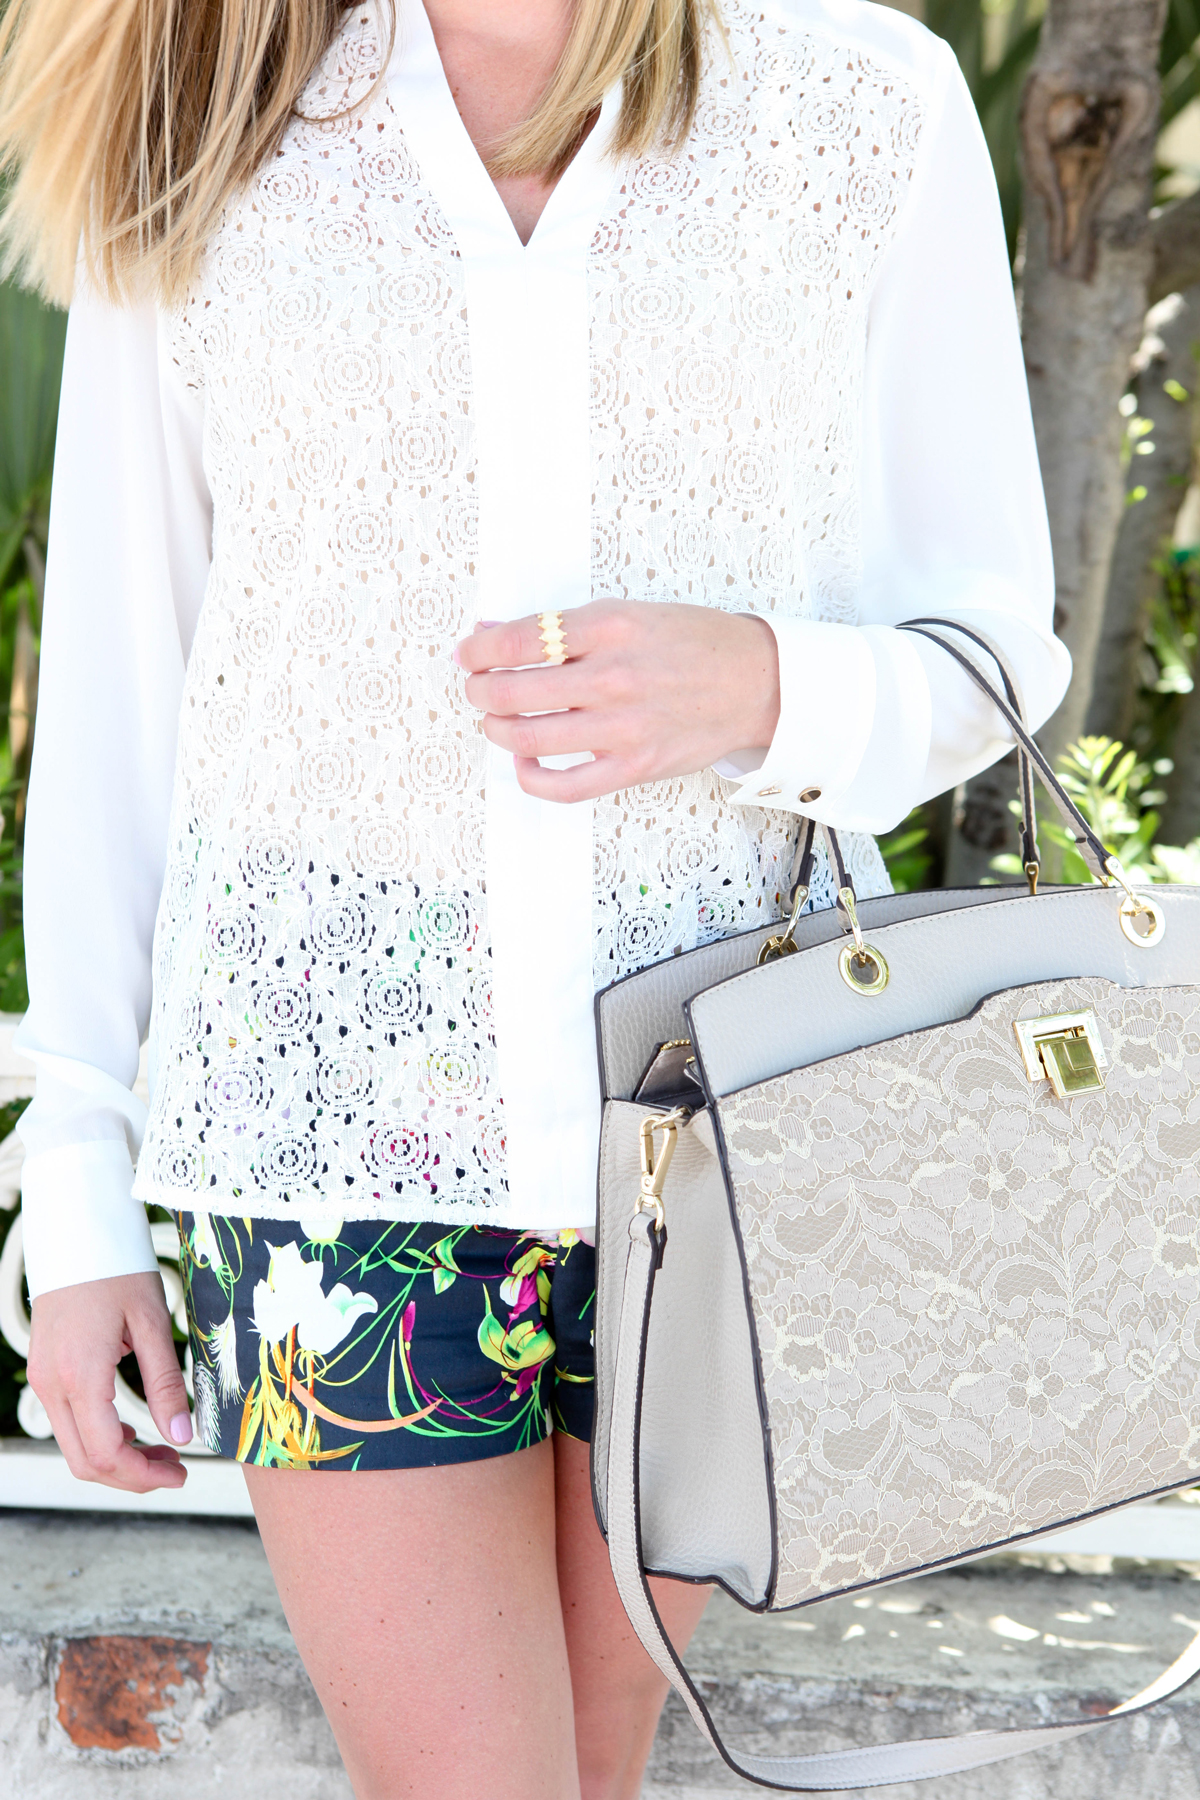 The Limited lace purse and top